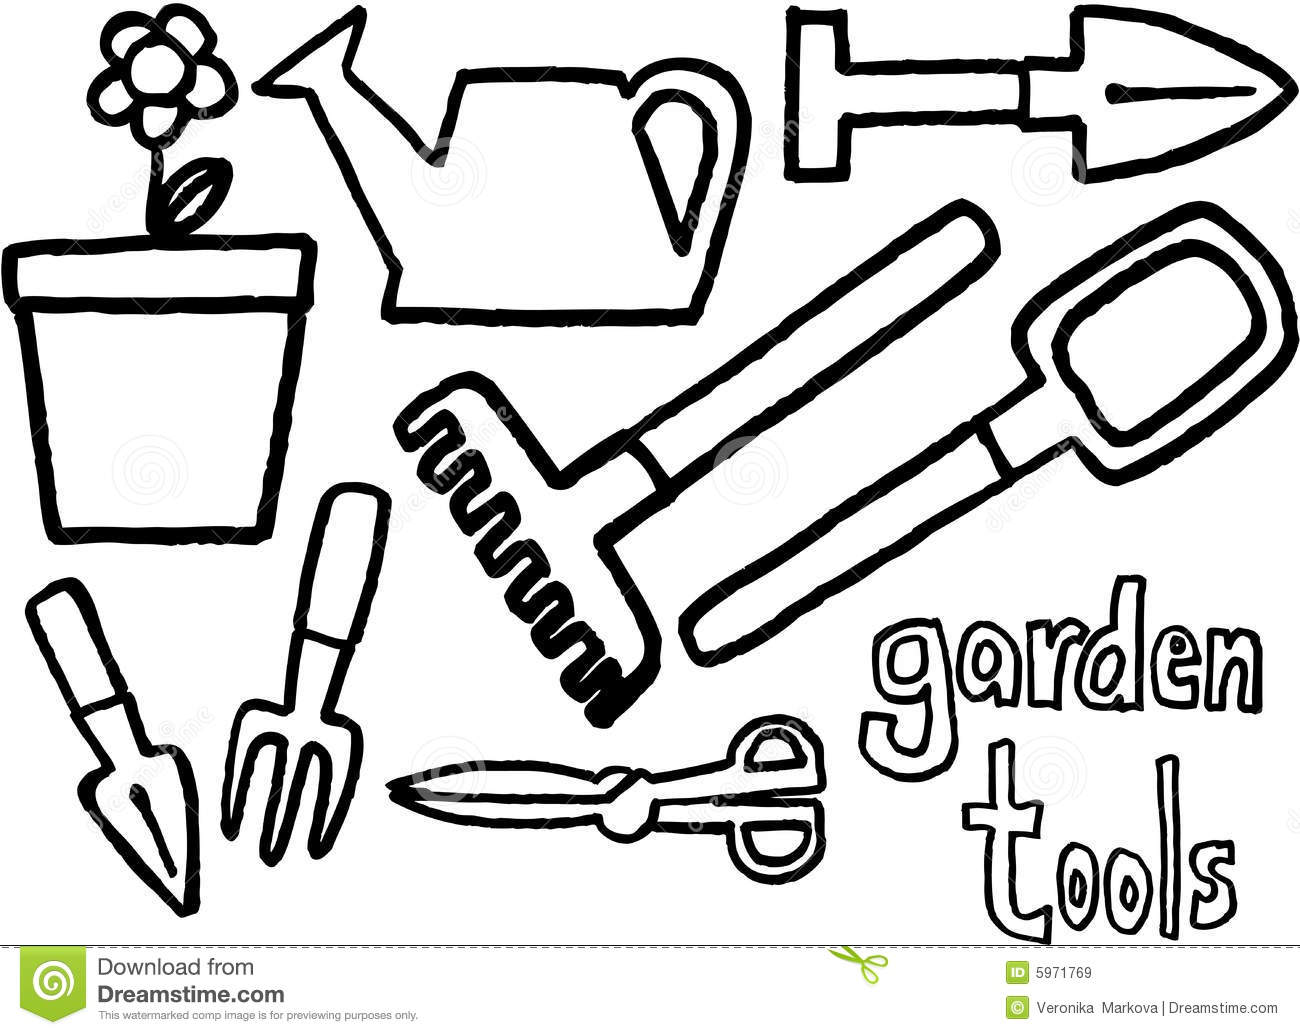 Coloring sheets tools - Coloring Sheet Tools Garden Tools Colouring Pages